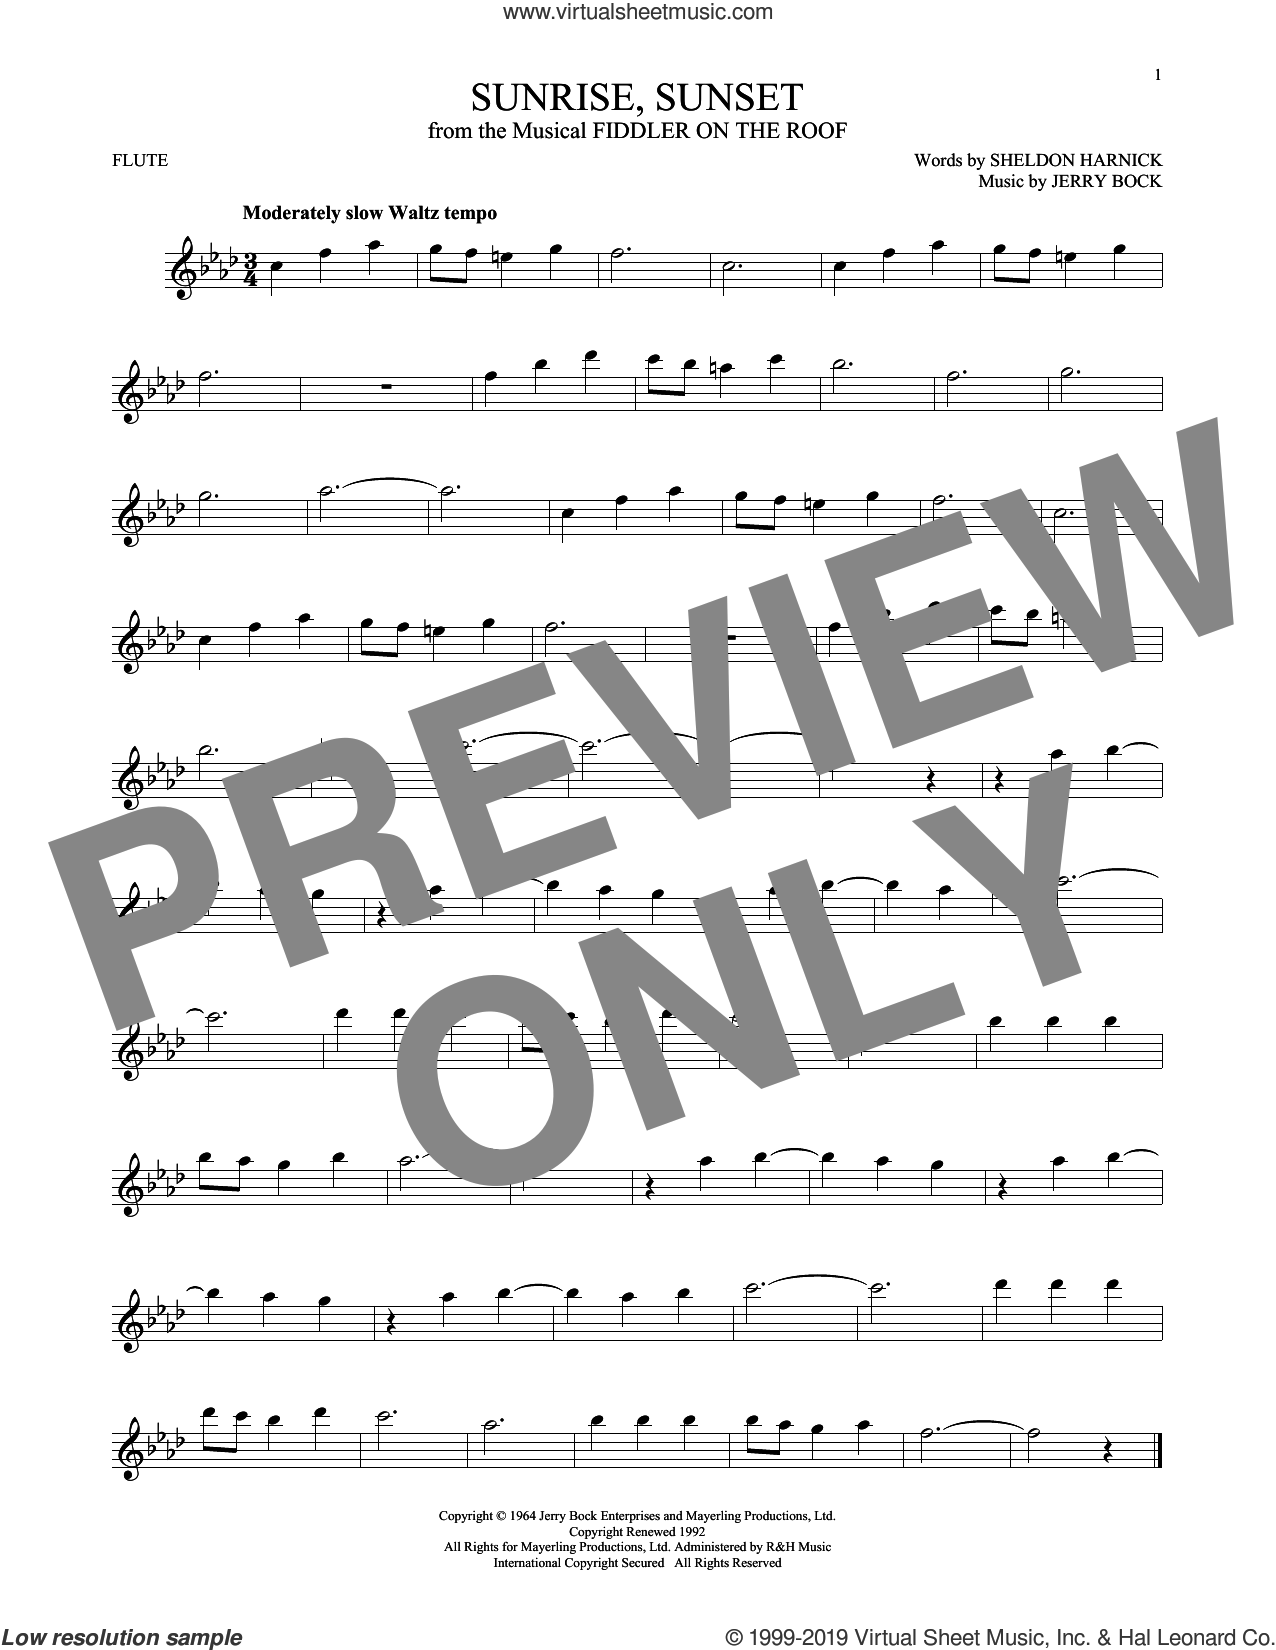 Sunrise, Sunset sheet music for flute solo by Jerry Bock and Sheldon Harnick, intermediate skill level